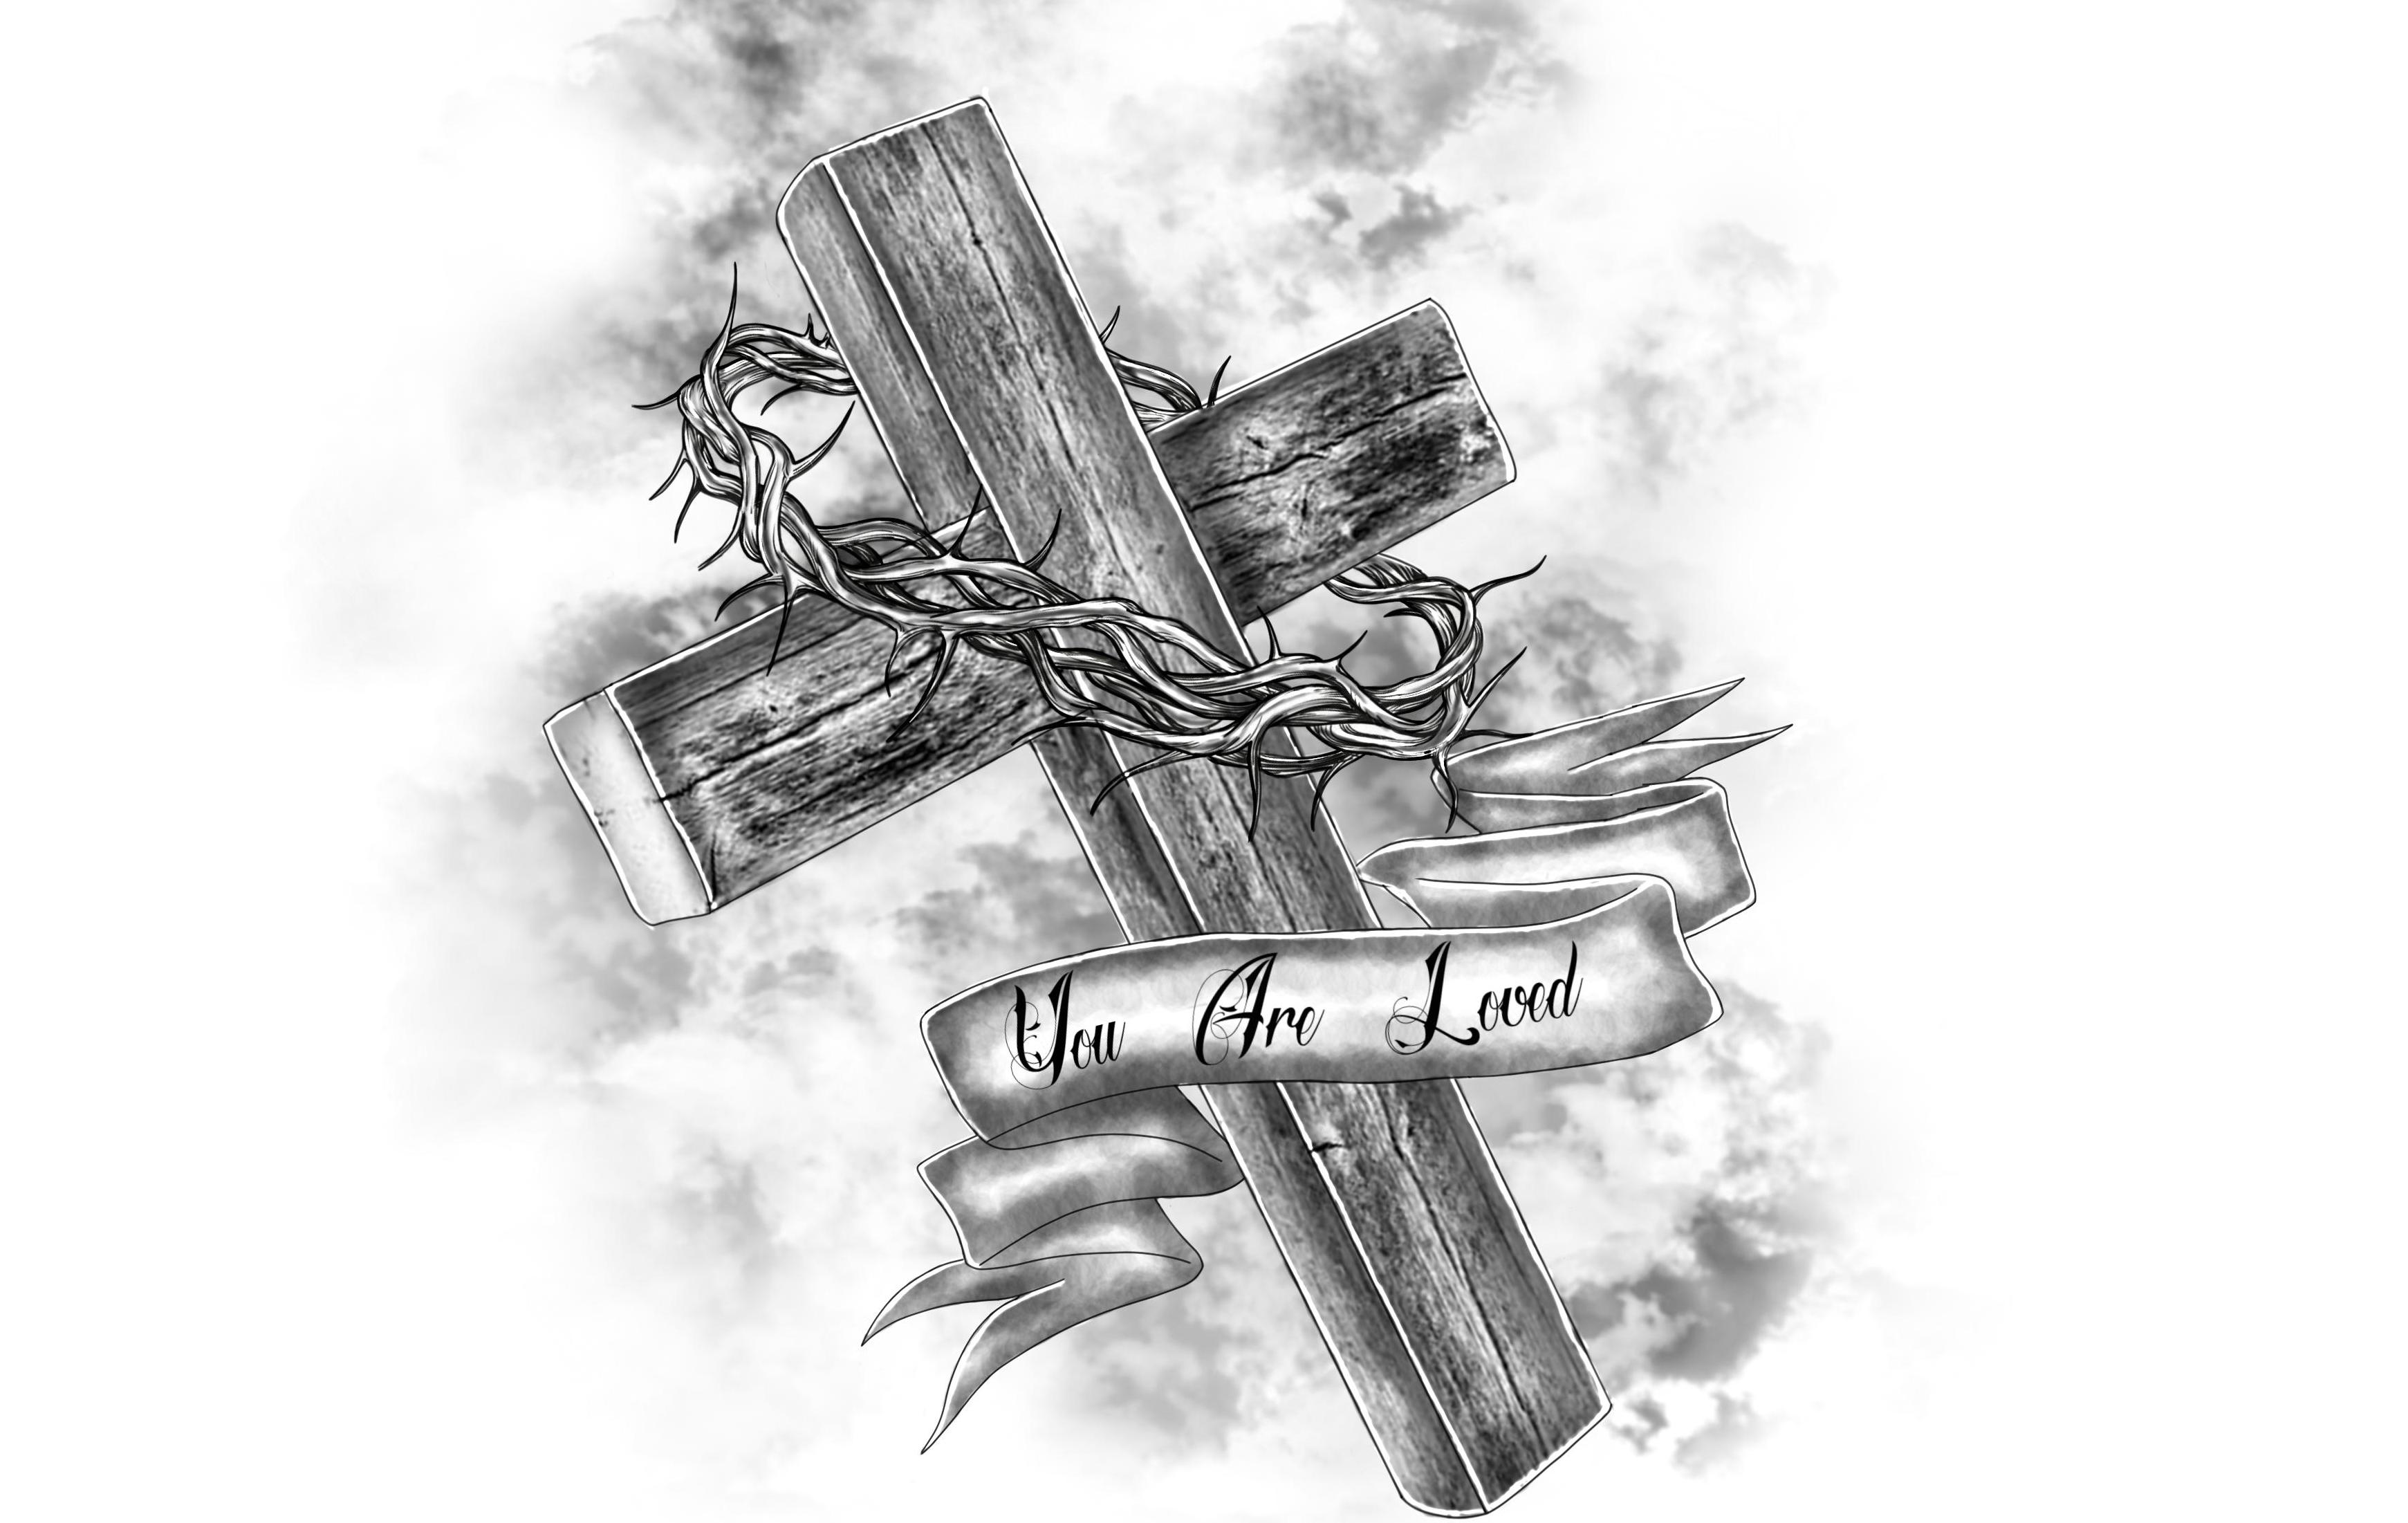 Cross Tattoo Meanings Custom Tattoo Design Just because you have a cross tattoo, it doesn't mean you're a religious freak. cross tattoo meanings custom tattoo